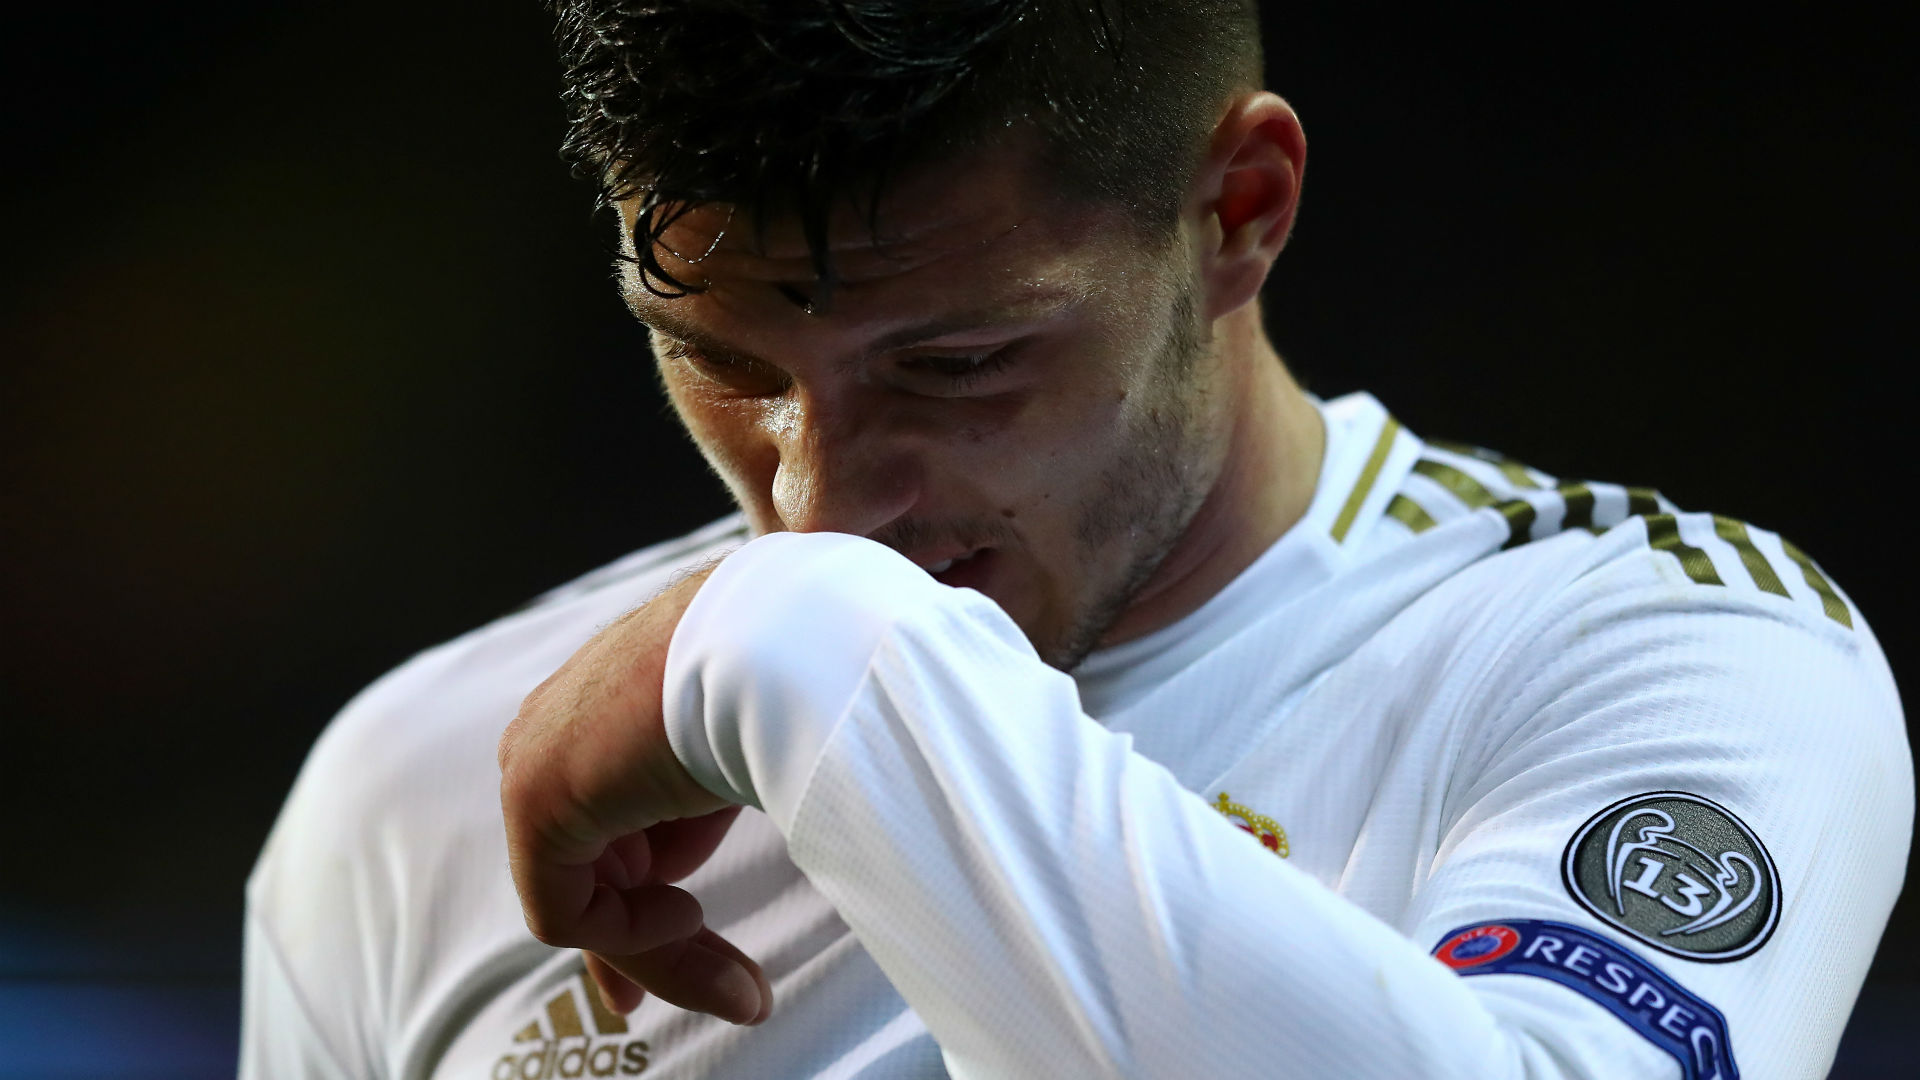 'Jovic doing everything to ruin his career' – Real Madrid striker slammed by former Serbian star Stepanovic